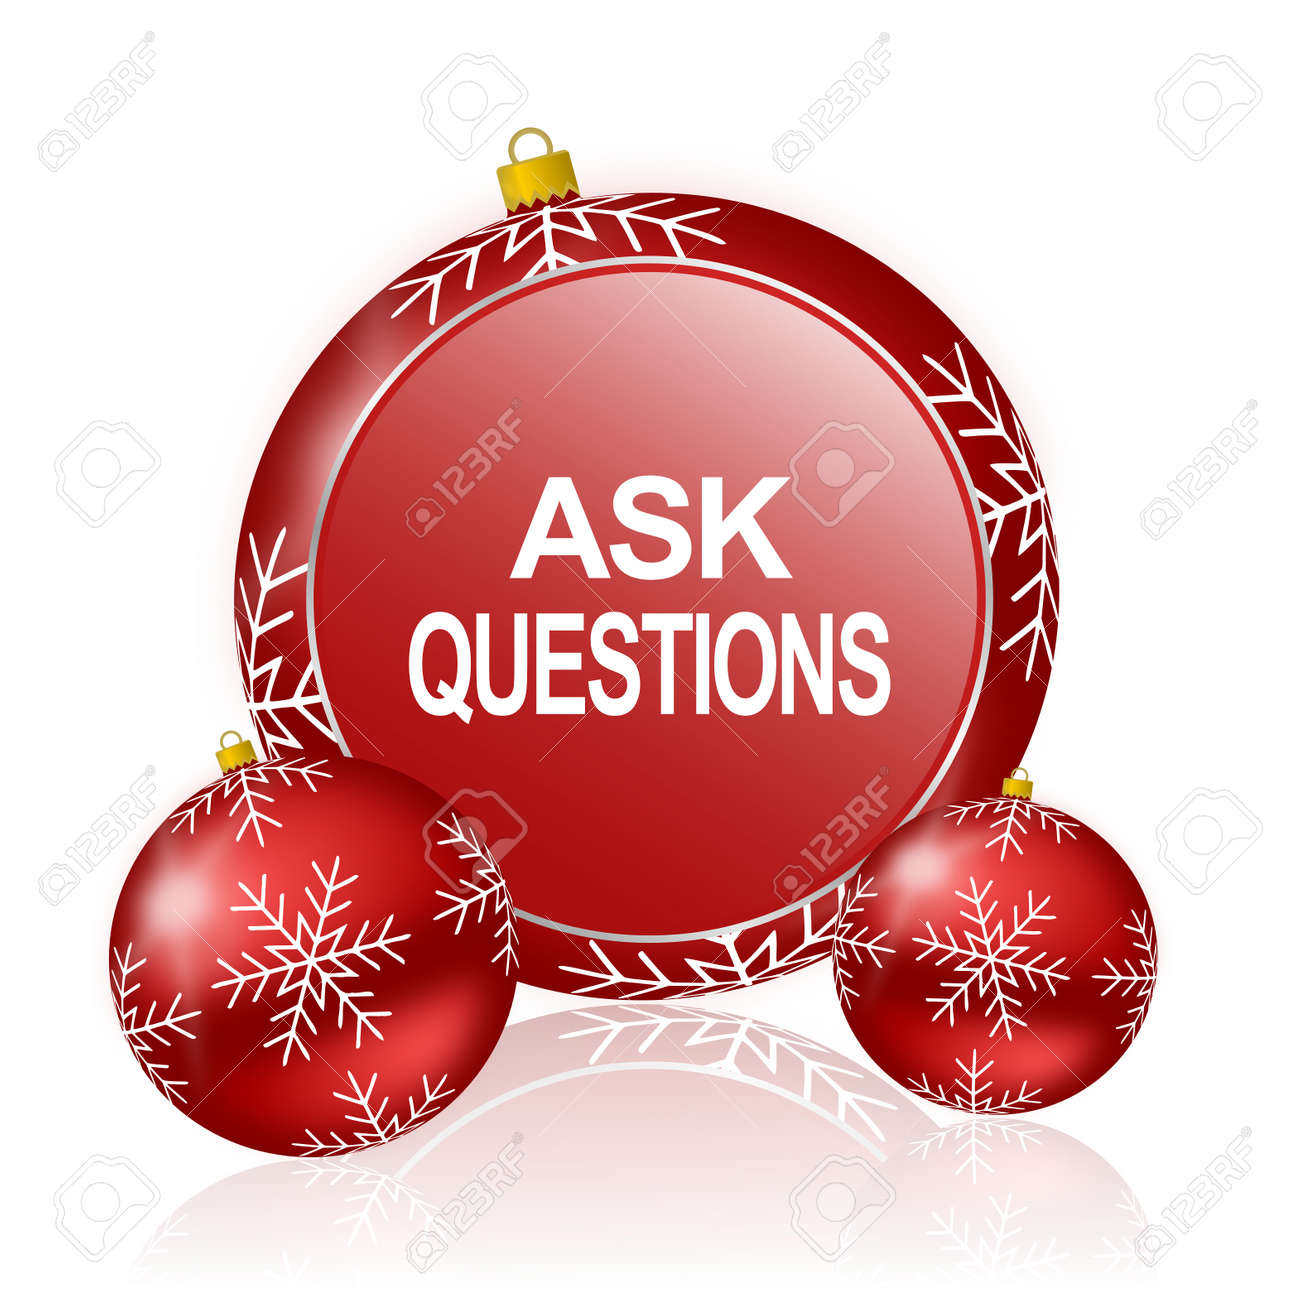 Christmas Questions To Ask.Ask Questions Christmas Icon